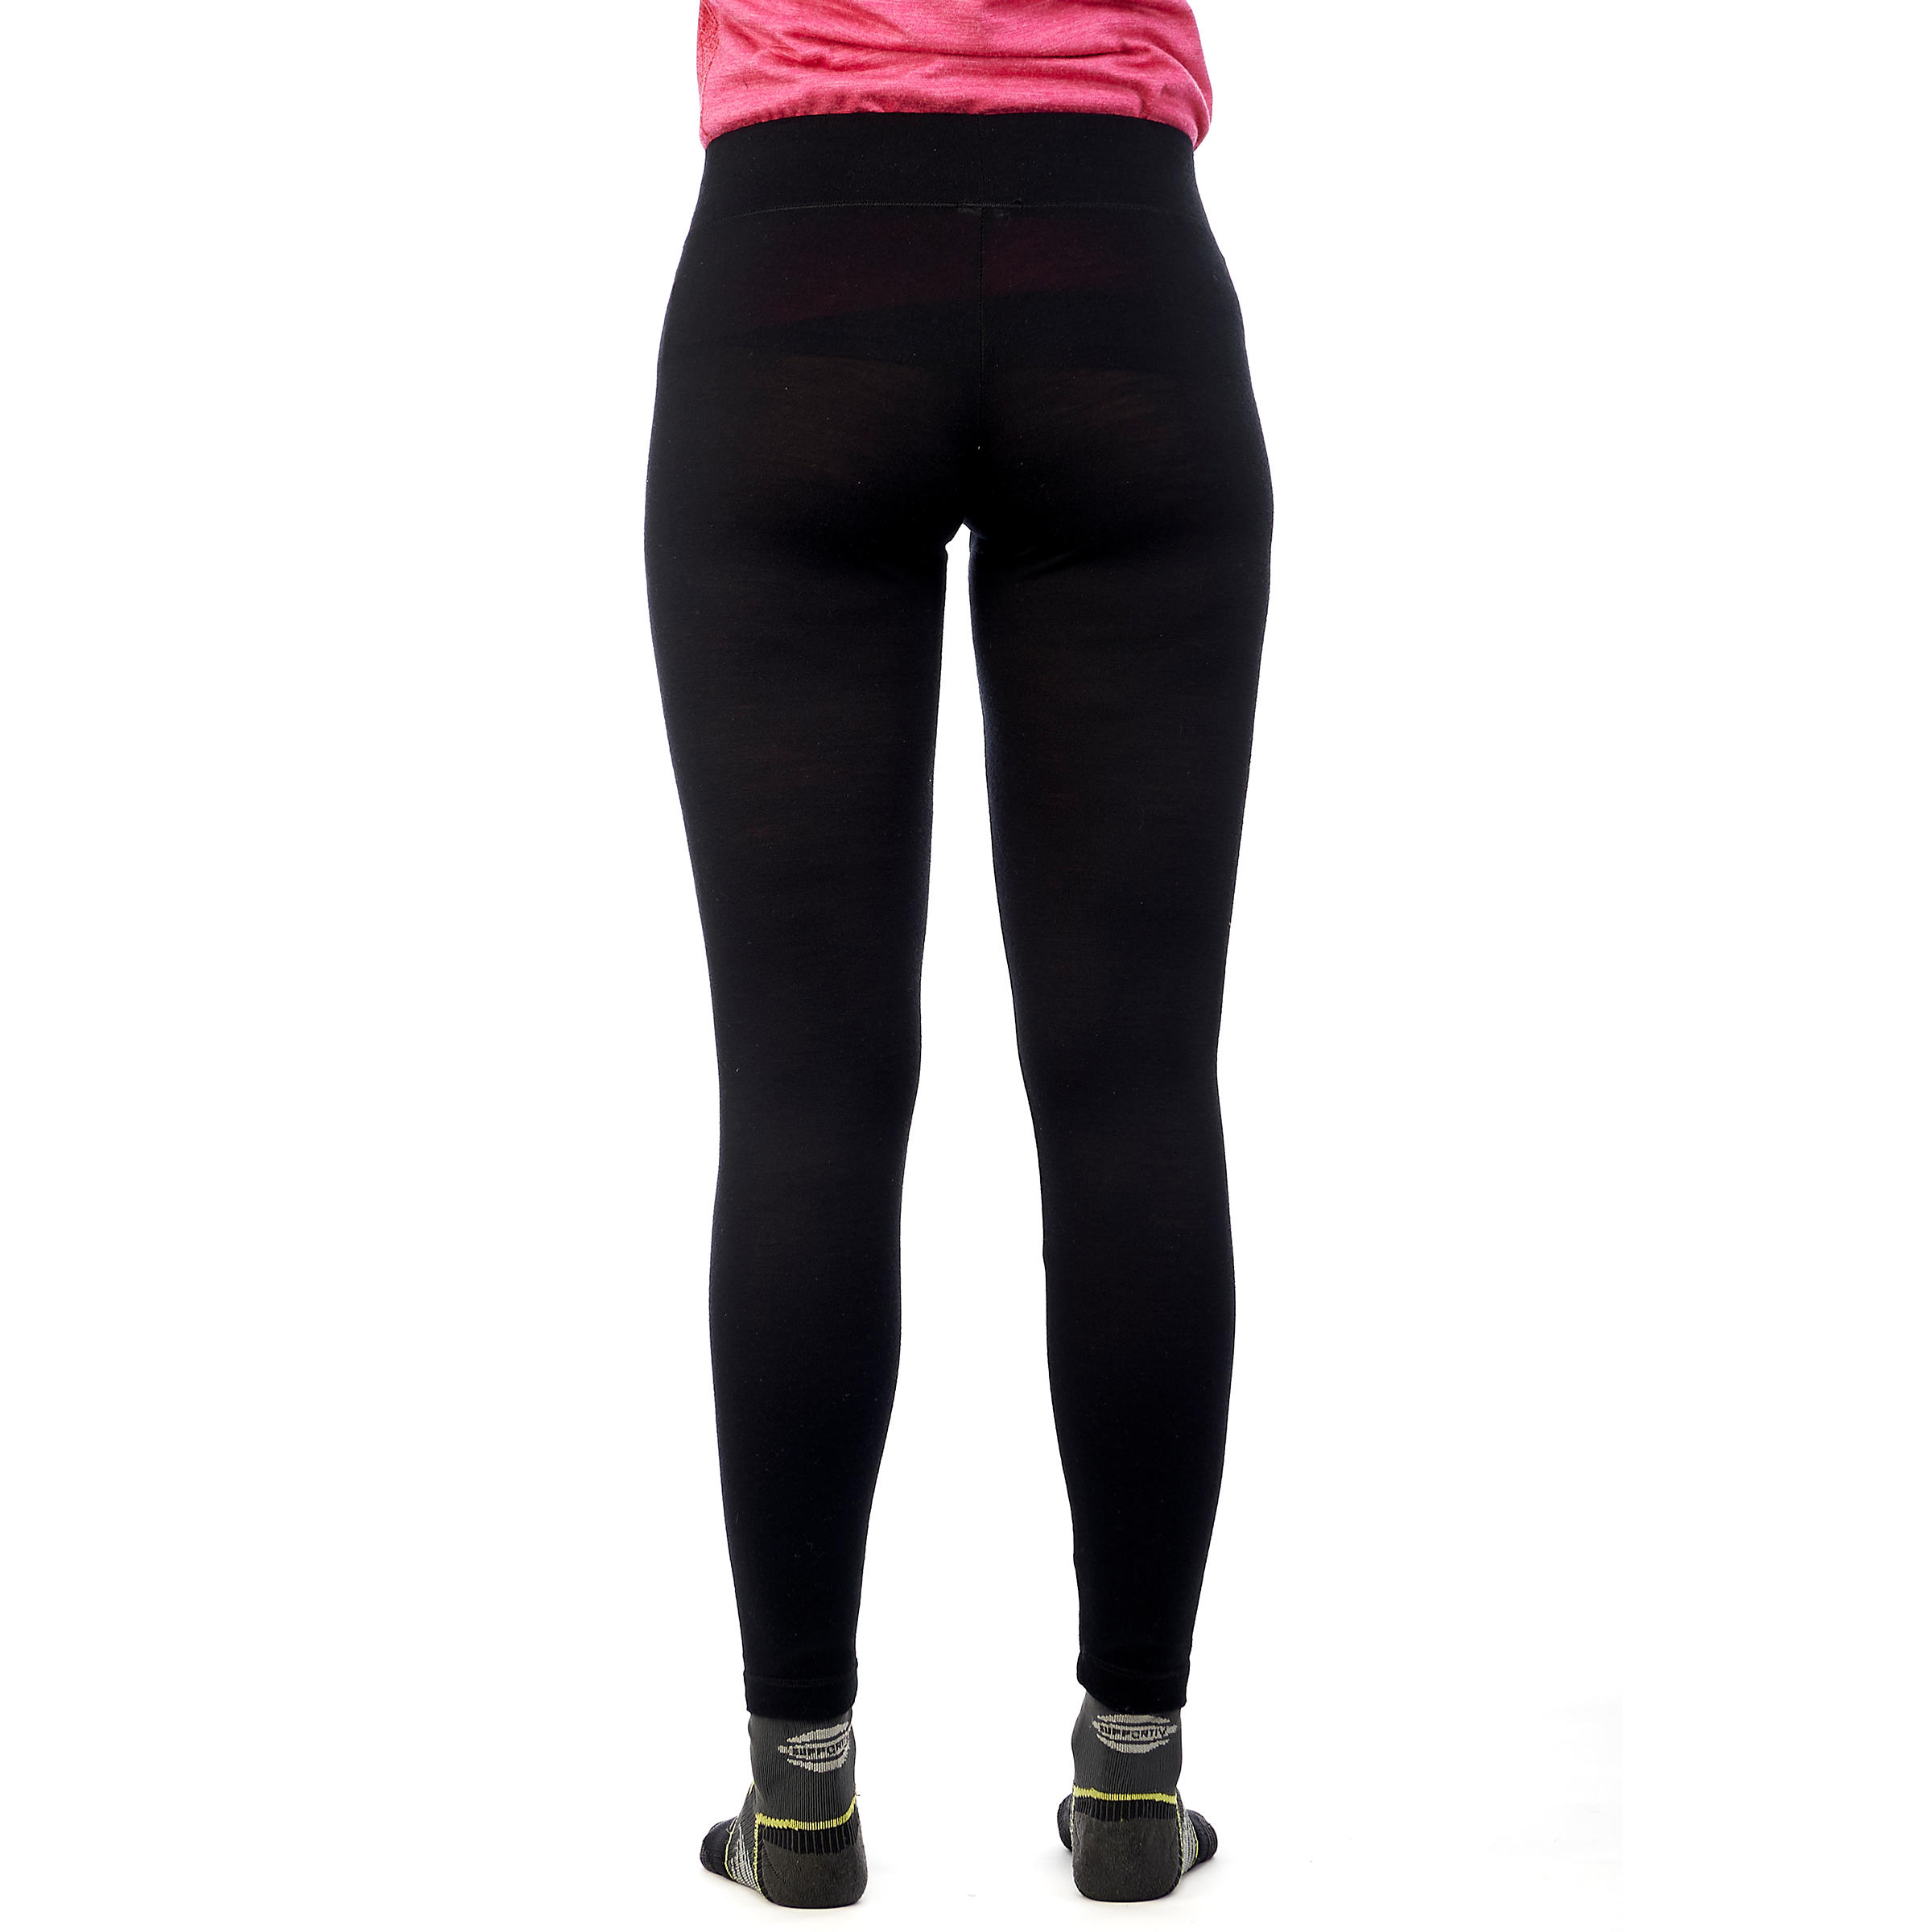 TECHWOOL 190 Women's Mountain Trekking Tights - Black